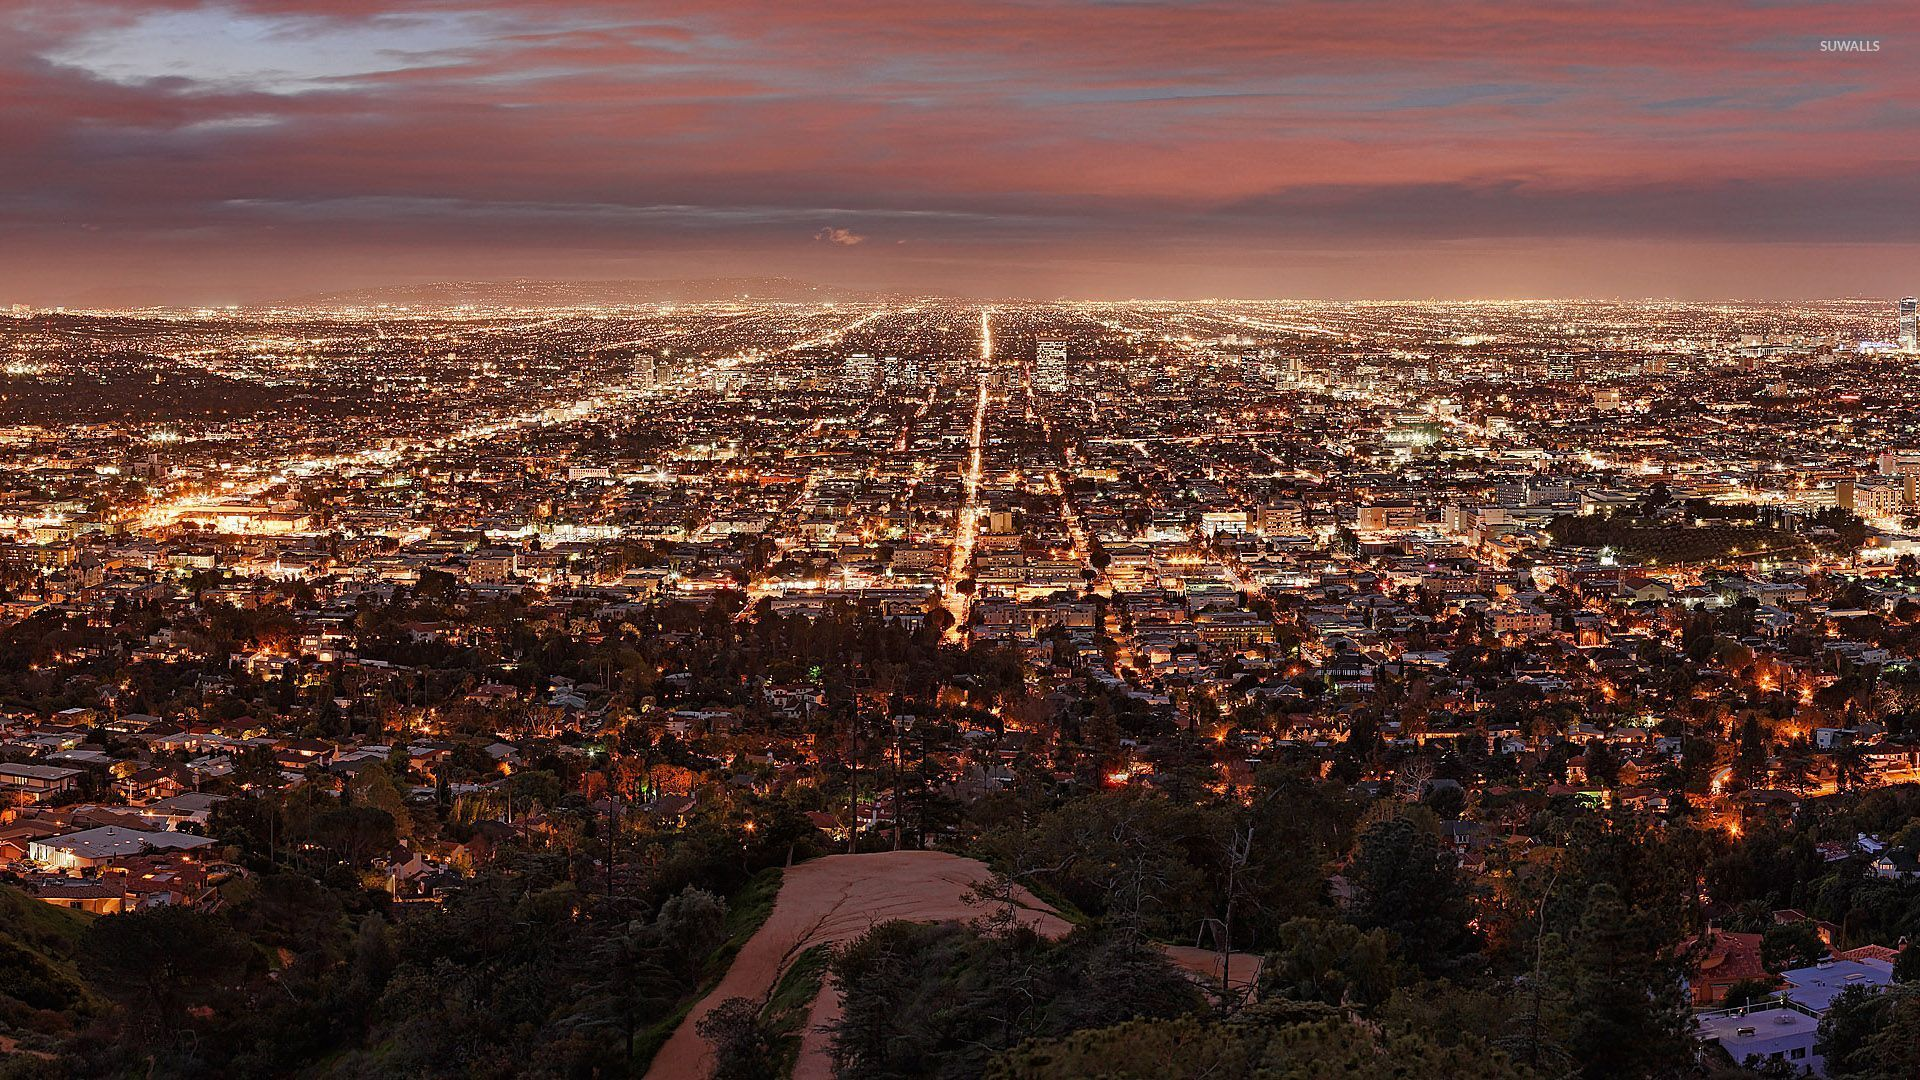 Beautiful Wallpaper Night Los Angeles - los-angeles-by-night-30168-1920x1080  HD-92491.jpg